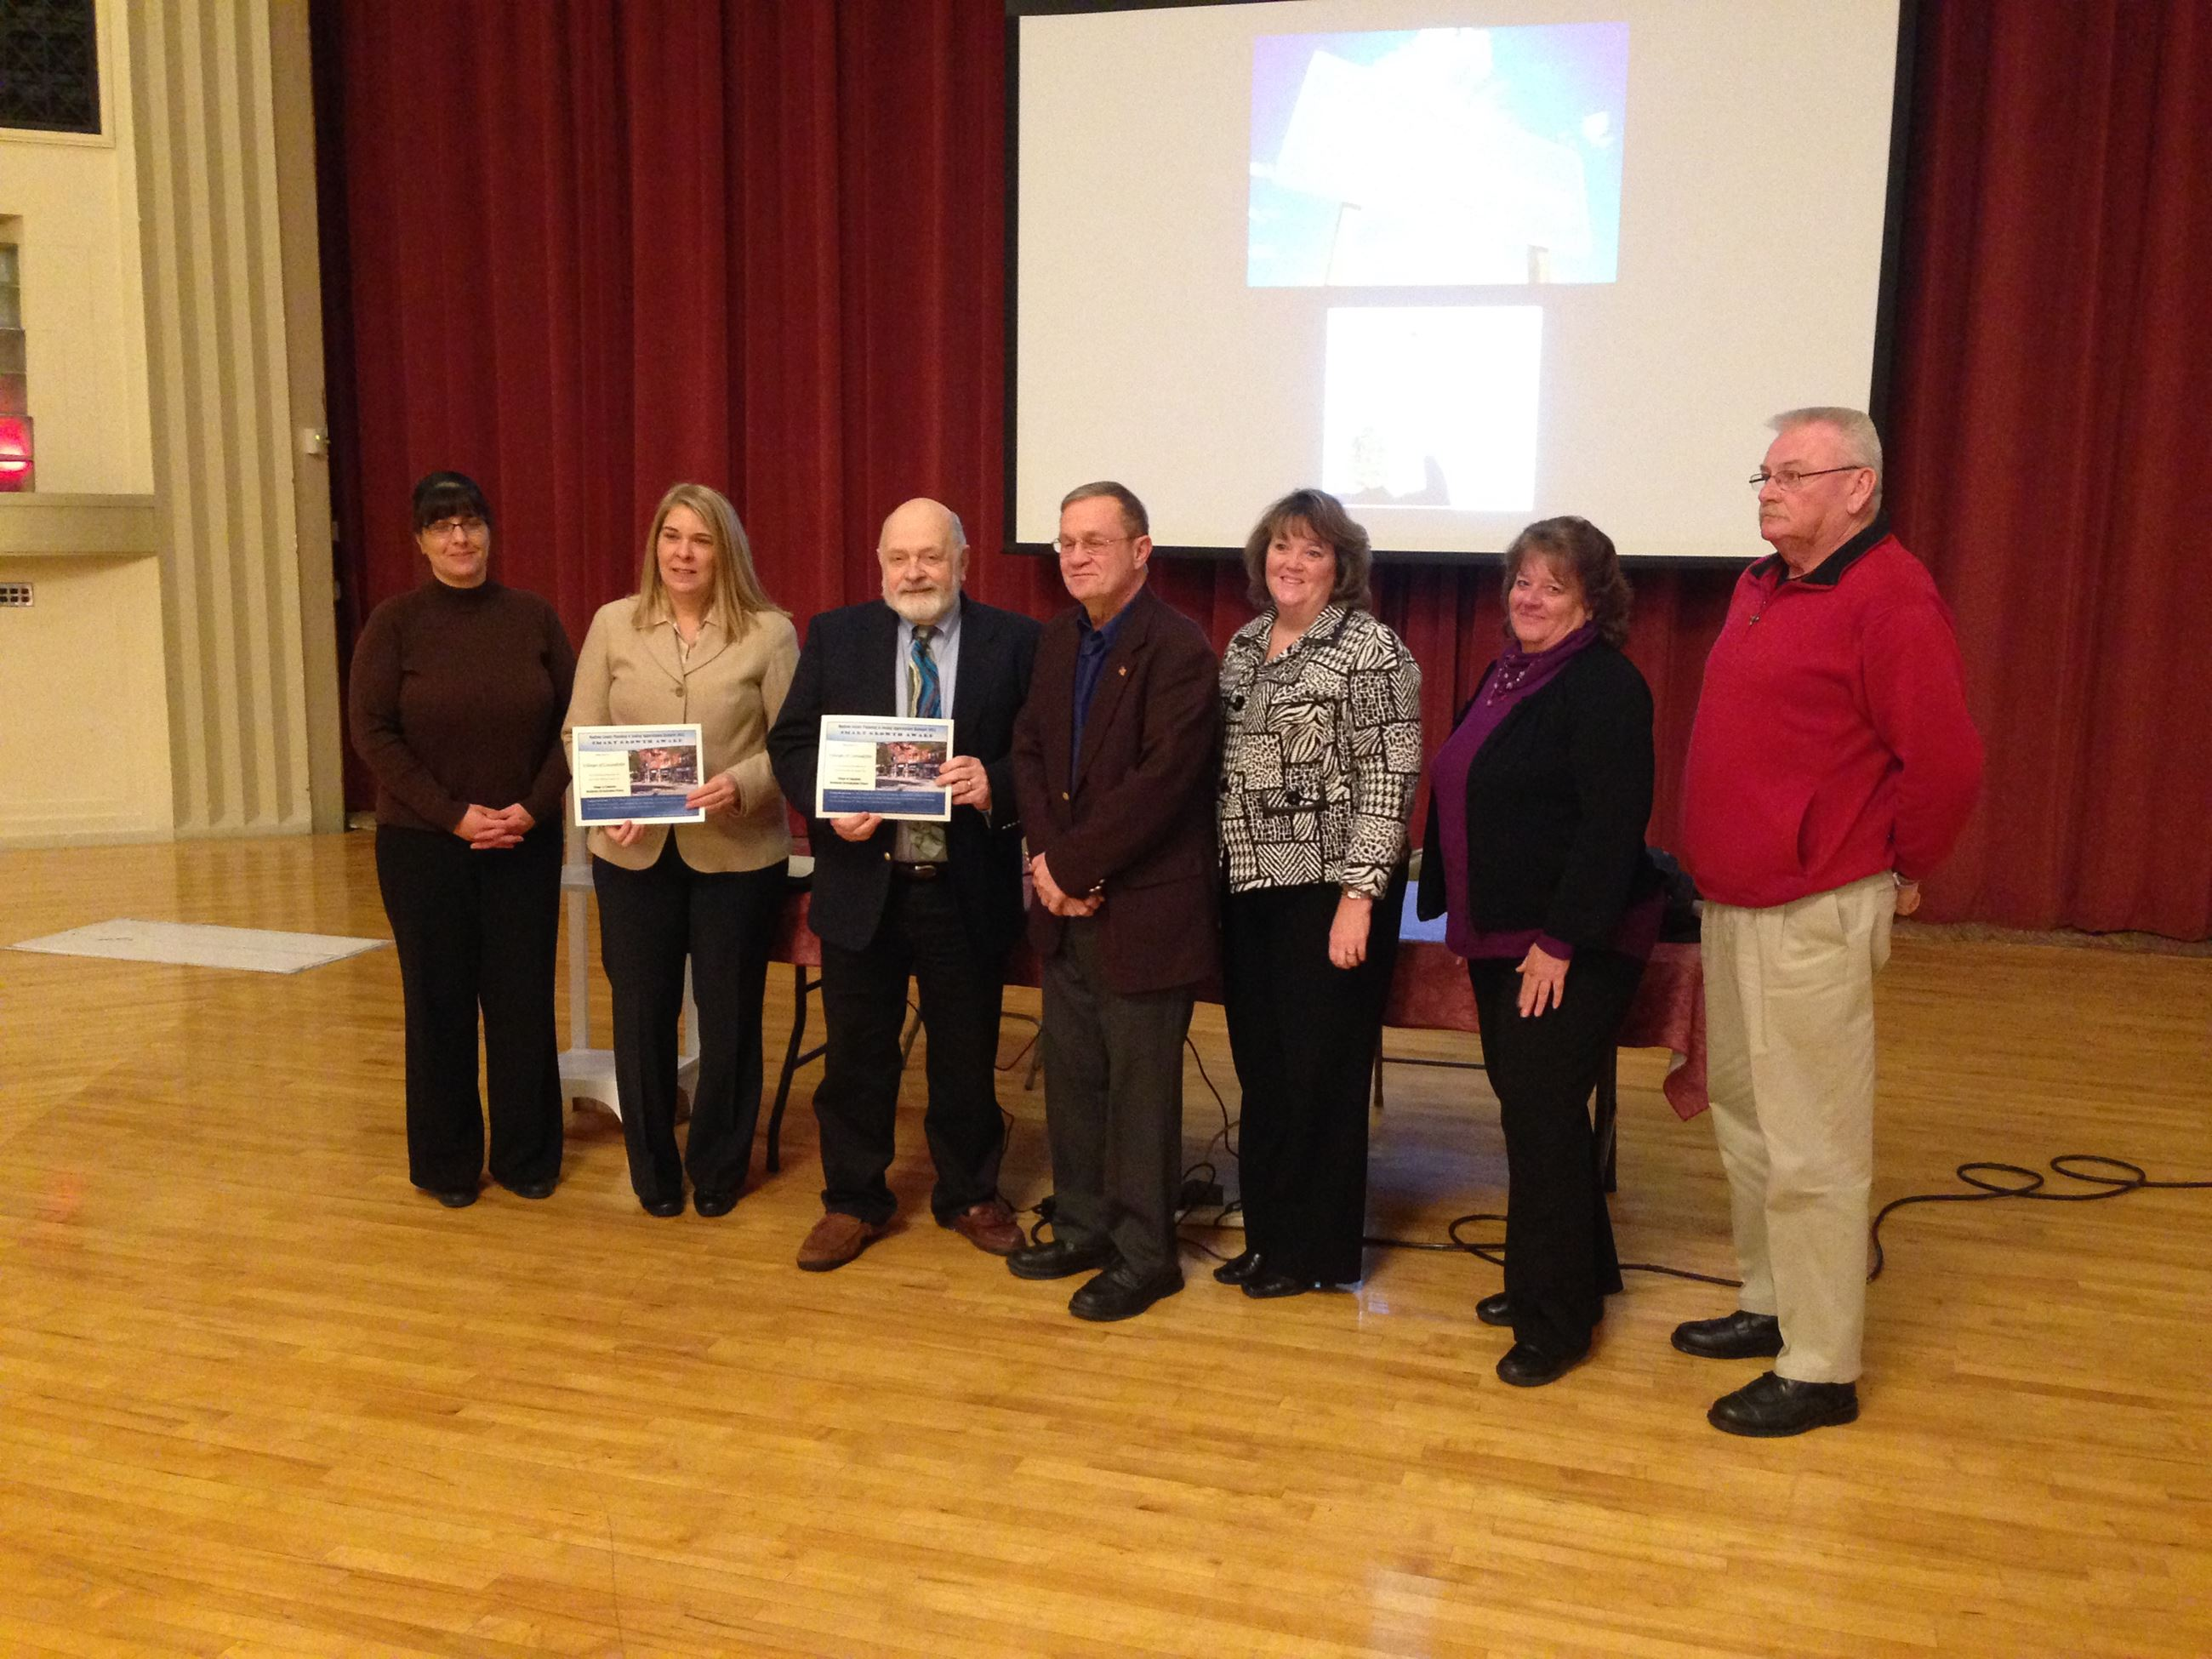 Village of Canastota award members